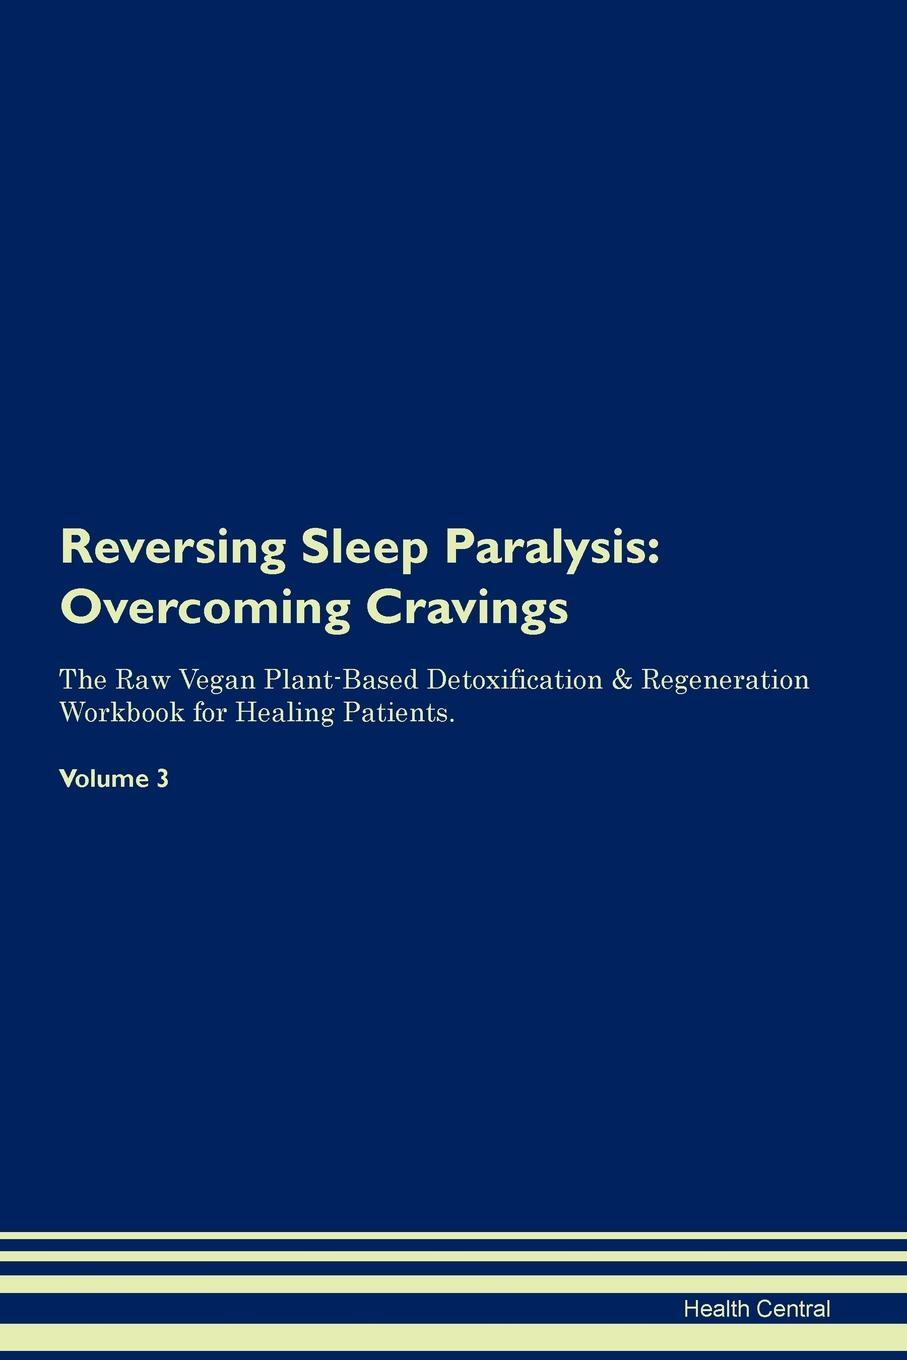 Reversing Sleep Paralysis. Overcoming Cravings The Raw Vegan Plant-Based Detoxification & Regeneration Workbook for Healing Patients. Volume 3